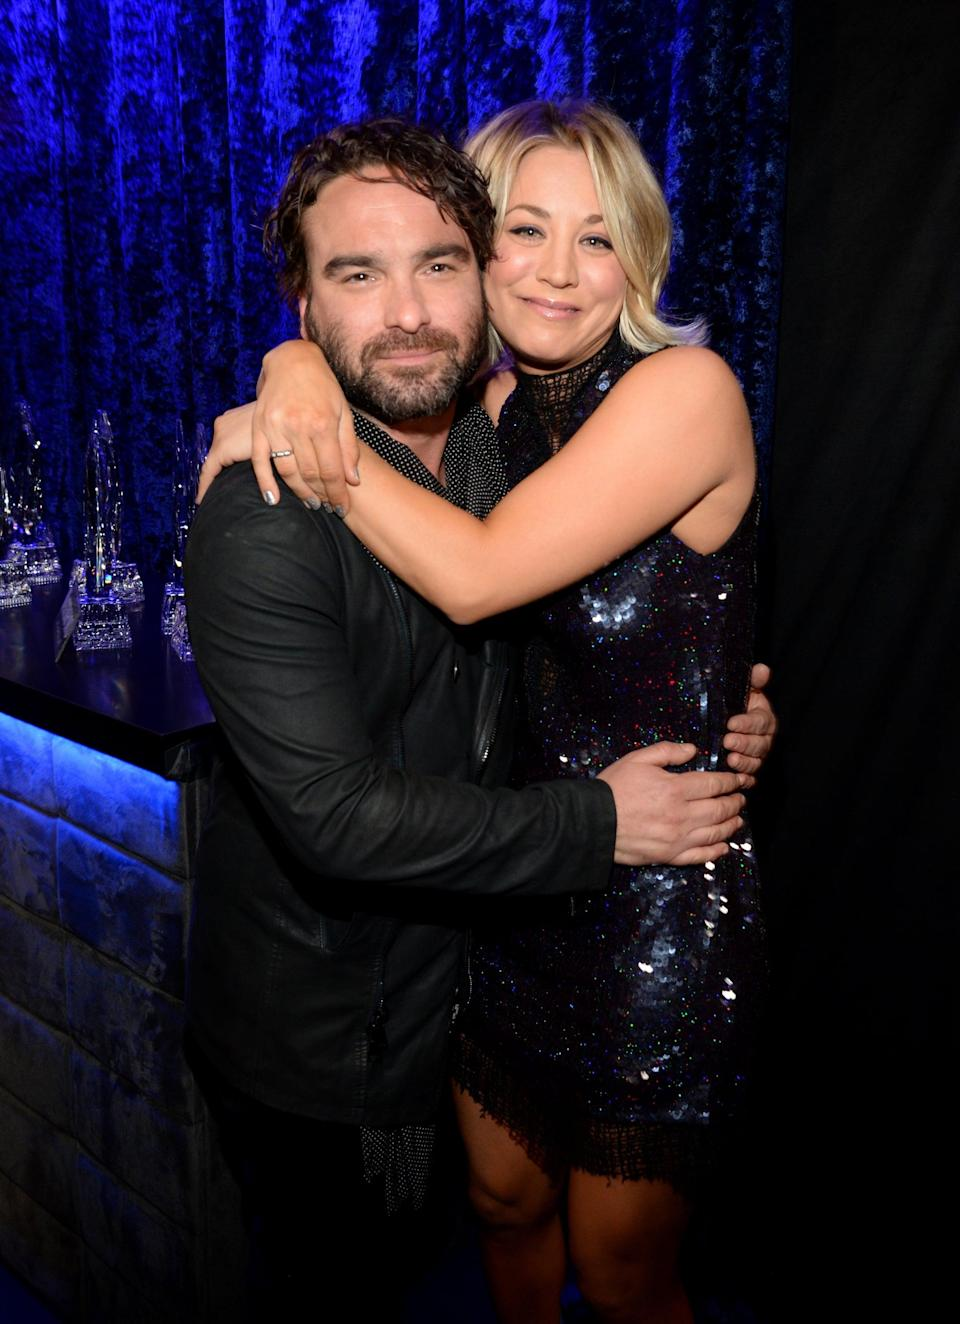 "<p>On <strong>The Big Bang Theory</strong>, Johnny and Kaley played neighbors turned lovers from 2007 to 2017, but you may not realize that the actors also dated in secret for two years. They got together soon after meeting on the show, but decided to end their own romance in 2009. </p> <p>Kaley first opened up about their relationship during a September 2010 interview with <strong>CBS Watch!</strong>, and <a href=""http://www.usmagazine.com/celebrity-body/news/kaley-cuoco-secretly-dated-big-bang-theory-co-star-for-two-years-2010299/"" class=""link rapid-noclick-resp"" rel=""nofollow noopener"" target=""_blank"" data-ylk=""slk:she had nothing but good things to say"">she had nothing but good things to say</a> about it. ""It was such a huge part of my life and no one knew about it,"" she said. ""This is the first time I've ever talked about it, ever. It was a wonderful relationship, but we never spoke a word about it and never went anywhere together."" Later, she added, ""We knew we weren't destined to be together. We accepted it and said, 'Look, if we ever break up, we will be professional.' I'm so lucky it was a mutual ending and that we don't hate each other."" </p> <p>Johnny expressed a similar sentiment during his own interview with <strong>CBS Watch! </strong>in December 2013, saying that <a href=""http://www.usmagazine.com/celebrity-news/news/johnny-galecki-opens-up-about-secret-two-year-romance-with-kaley-cuoco-were-dear-friends-2013711/"" class=""link rapid-noclick-resp"" rel=""nofollow noopener"" target=""_blank"" data-ylk=""slk:he and Kaley remained close"">he and Kaley remained close</a>. ""We're dear friends, still. Kaley's not just an ex - she's a part of my life,"" he said. ""I just don't like to speak about it. And not because I'm trying to be enigmatic; I just worry that it will conflict with people's acceptance of Leonard and Penny. I get the curiosity, but I don't want to distract from the story.""</p>"